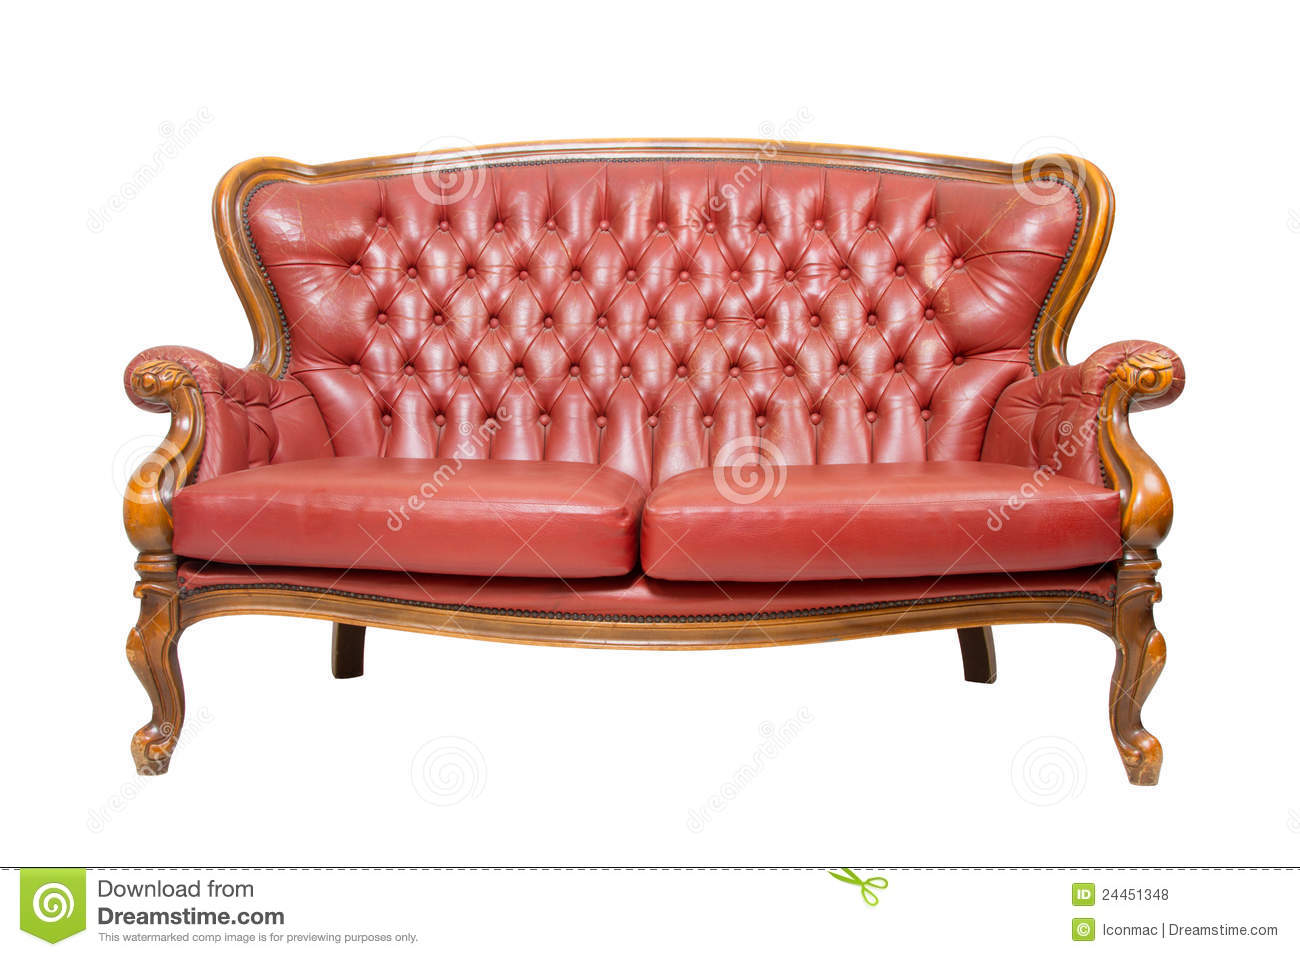 luxury vintage red sofa stock photo image of design 24451348. Black Bedroom Furniture Sets. Home Design Ideas